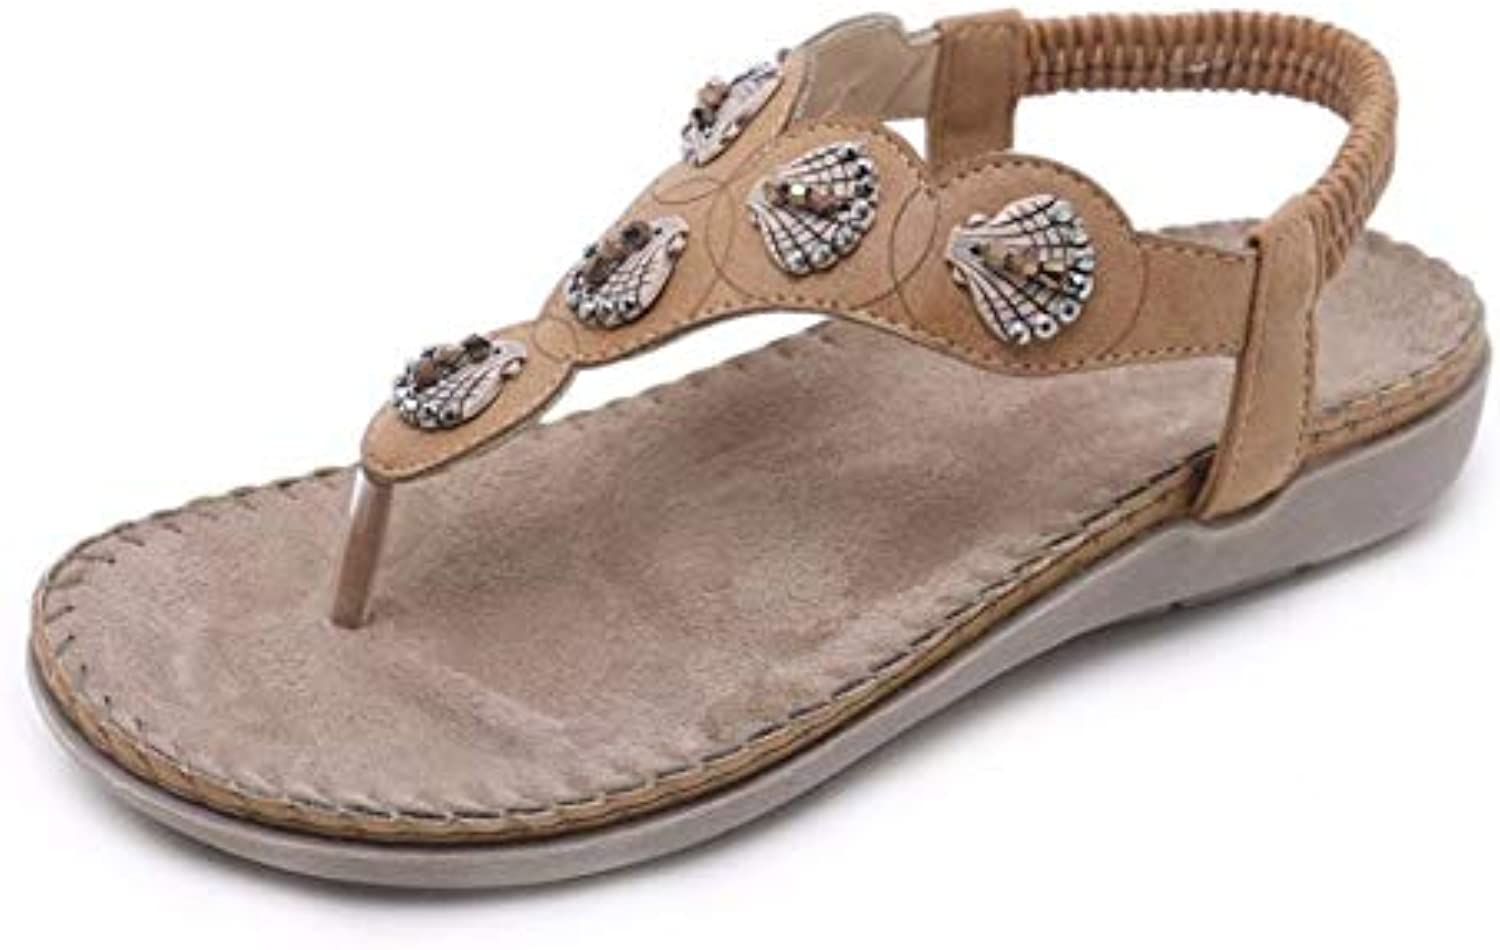 ZPSPZ sandals womens Ladies'summer Sandals, Open Toes, Toes, Bohemian Diamonds, Large Flat shoes, Beach shoes